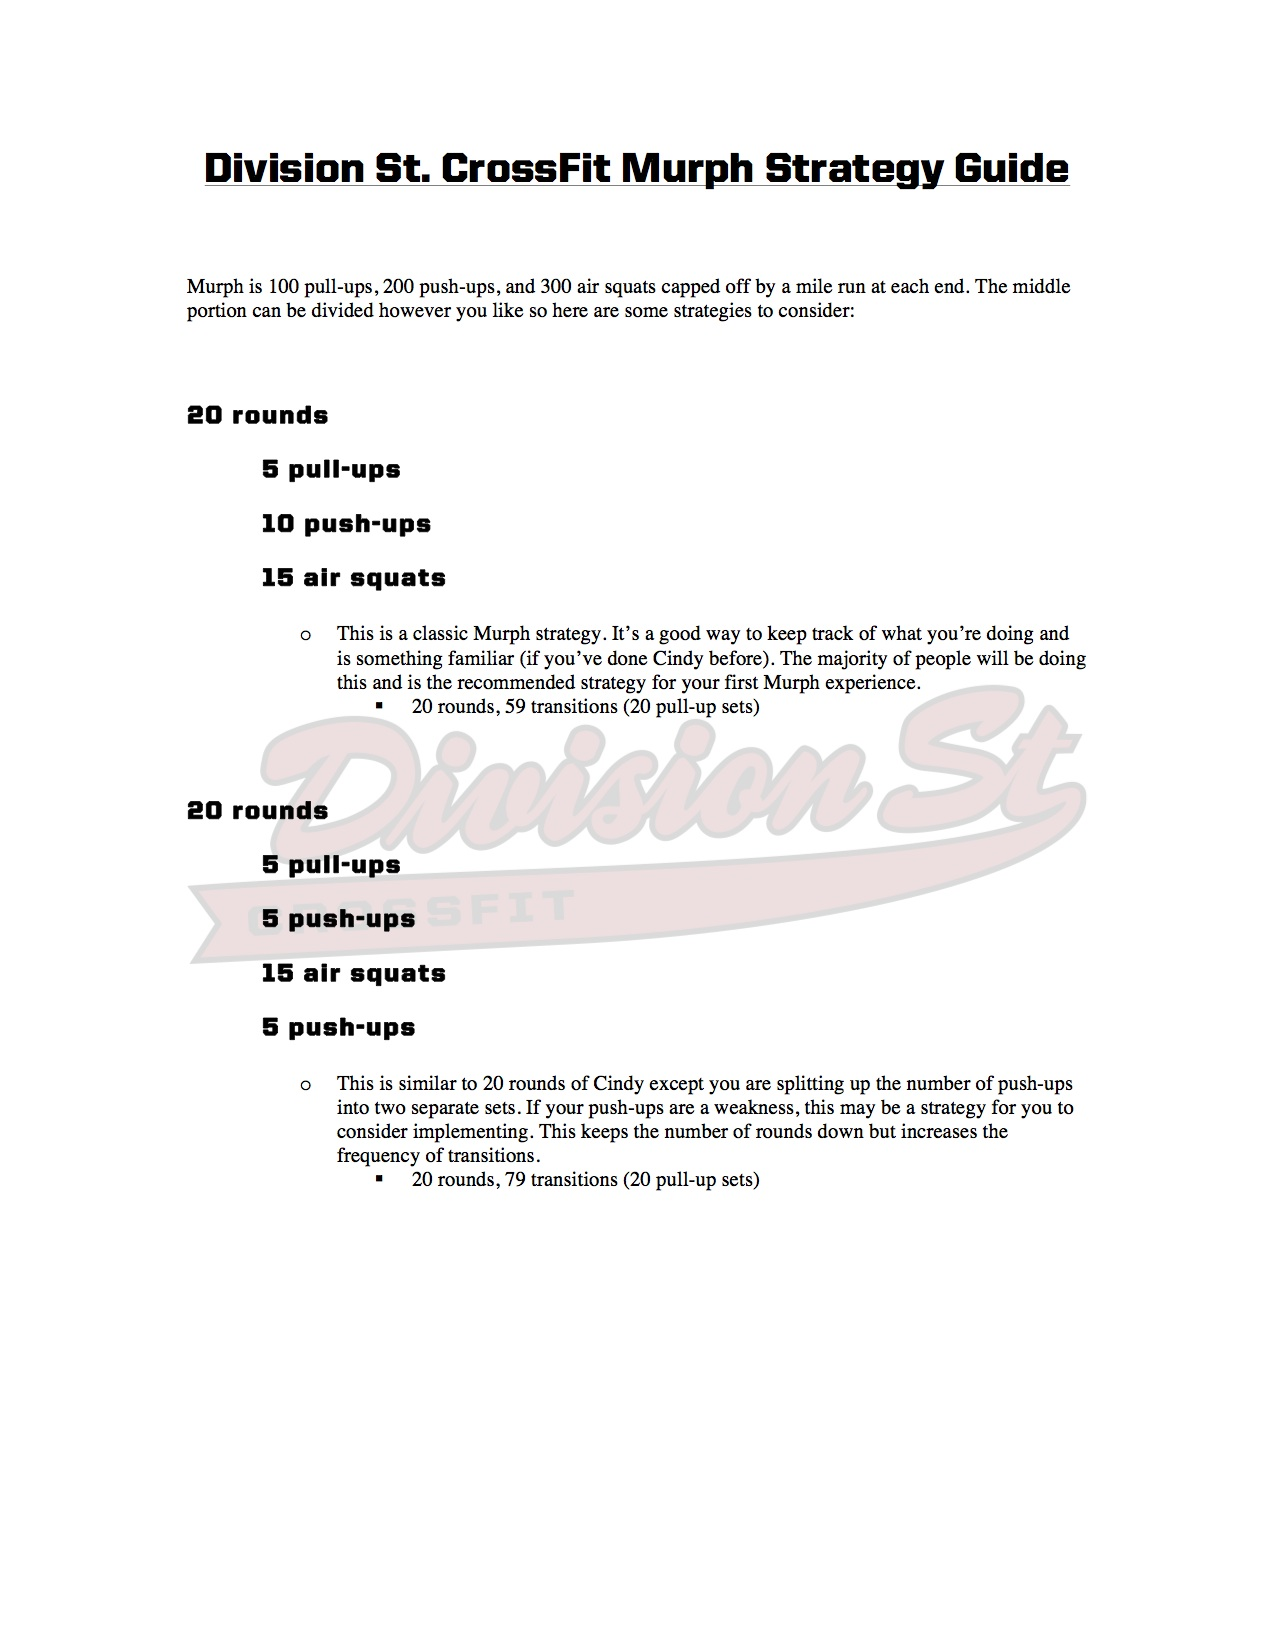 Division St. CrossFit Murph Strategy Guide (page 1)